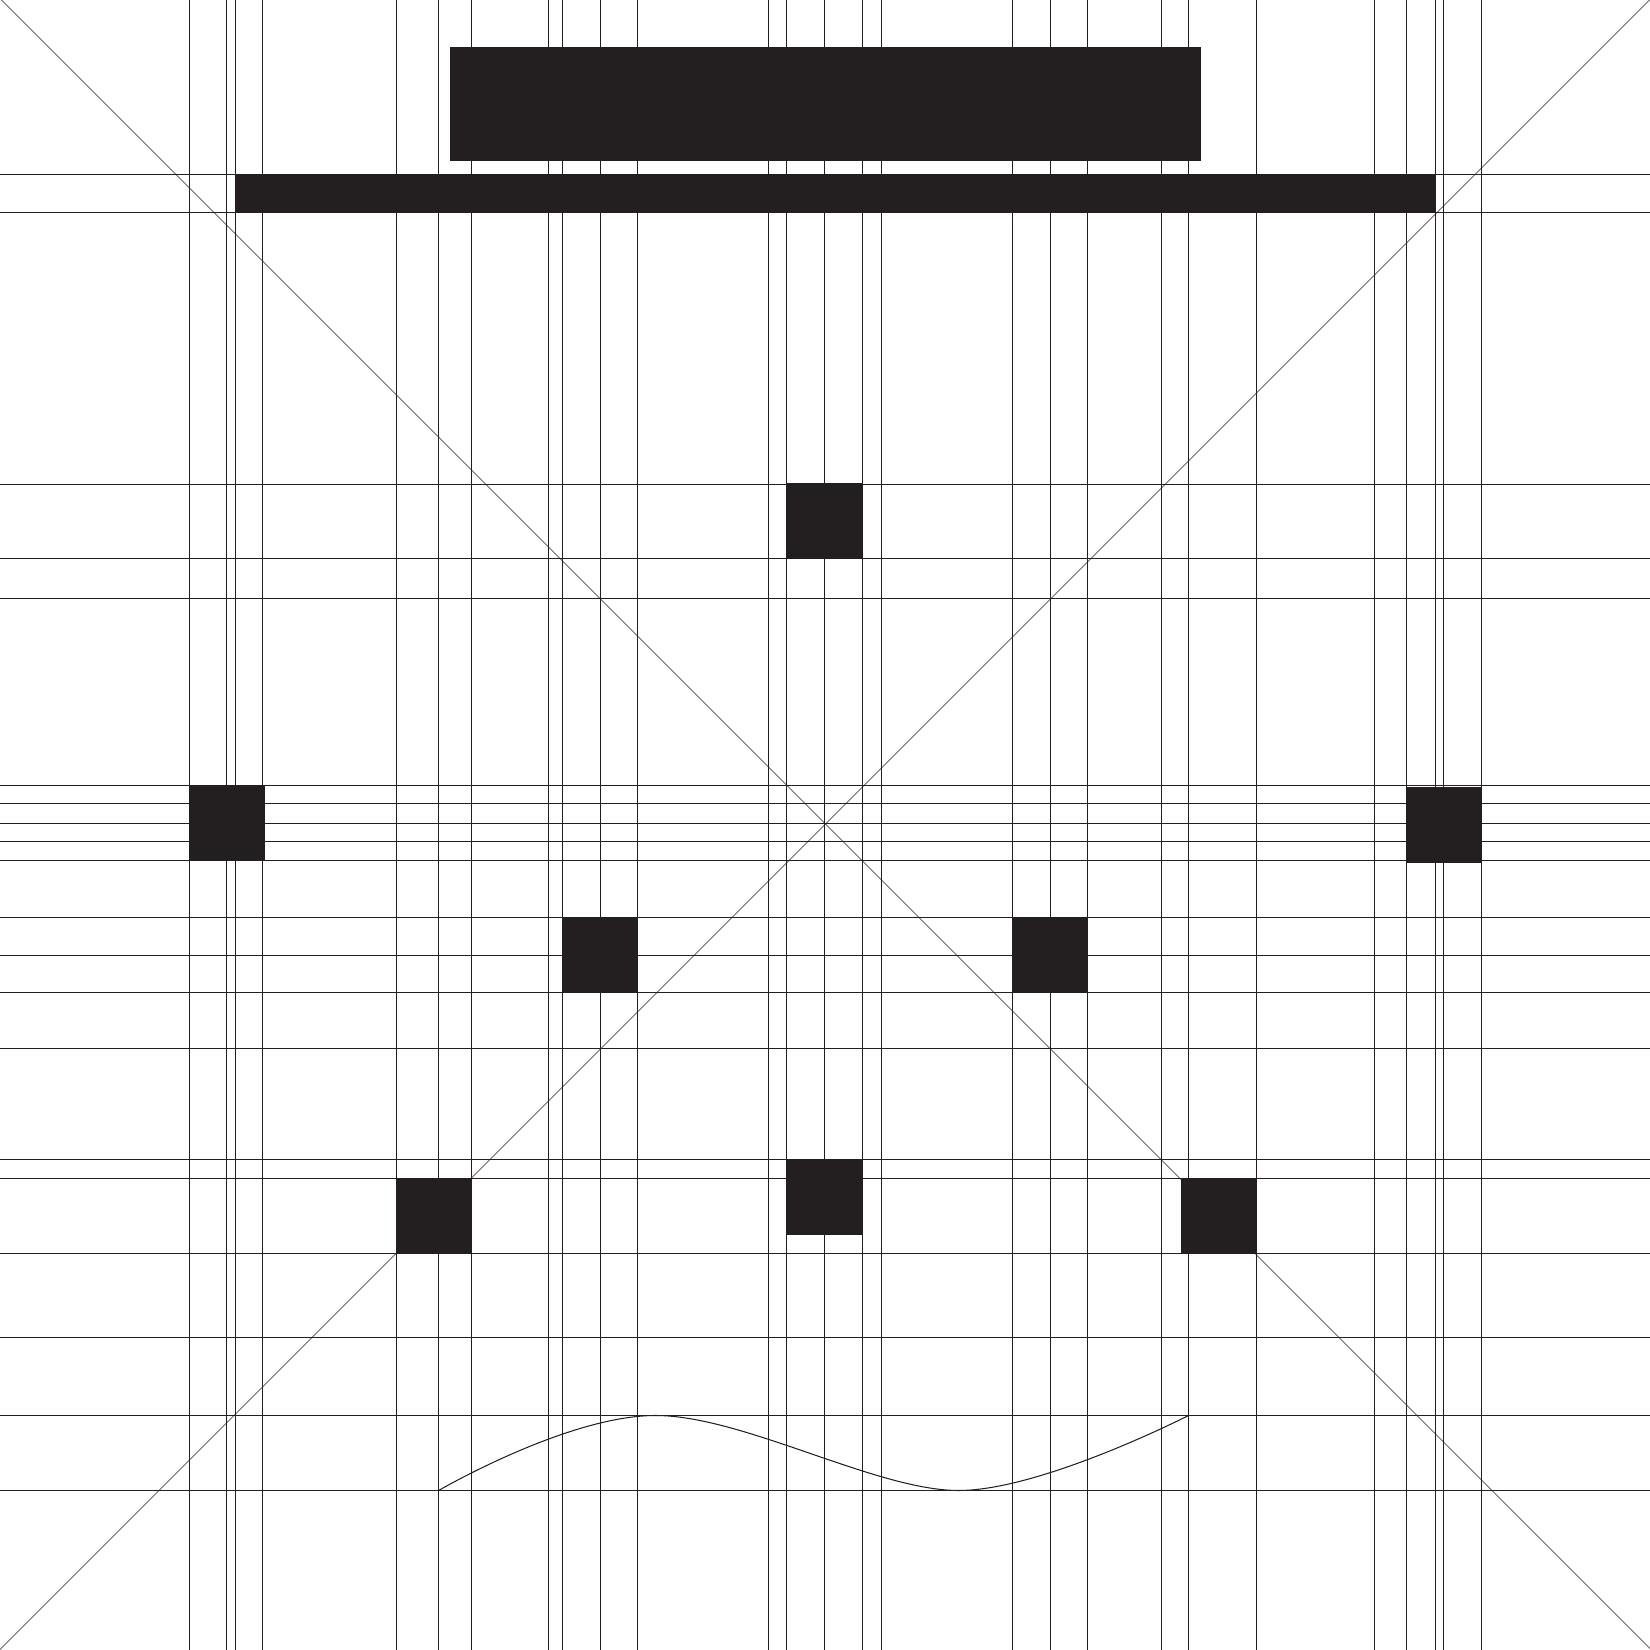 Assignment5_process1_#3_shapes.lines_000001.jpg